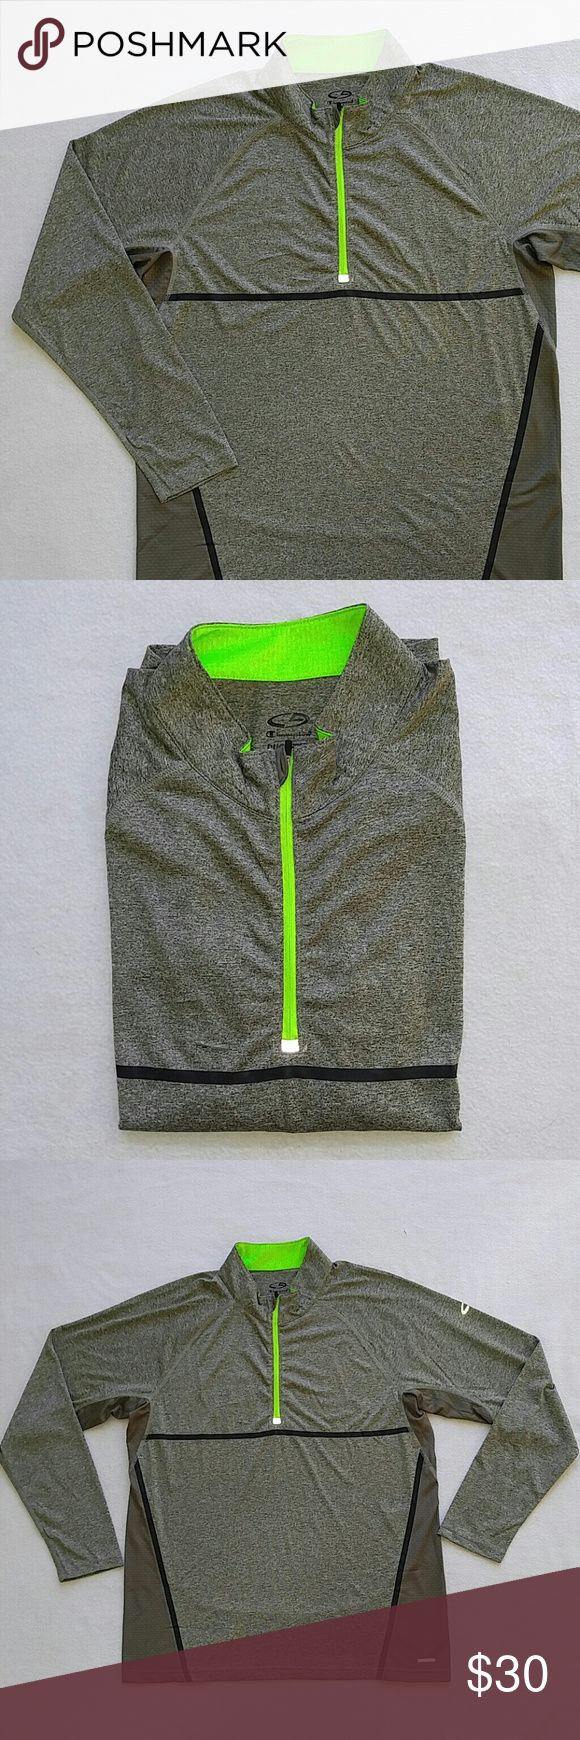 Champion Duo Dry Shirt Army green and neon yellow Duo Dry shirt! Gently used and in good condition! It just has a small hole on the back of the collar from where the tag was placed. Thanks for looking! Champion Shirts Tees - Long Sleeve